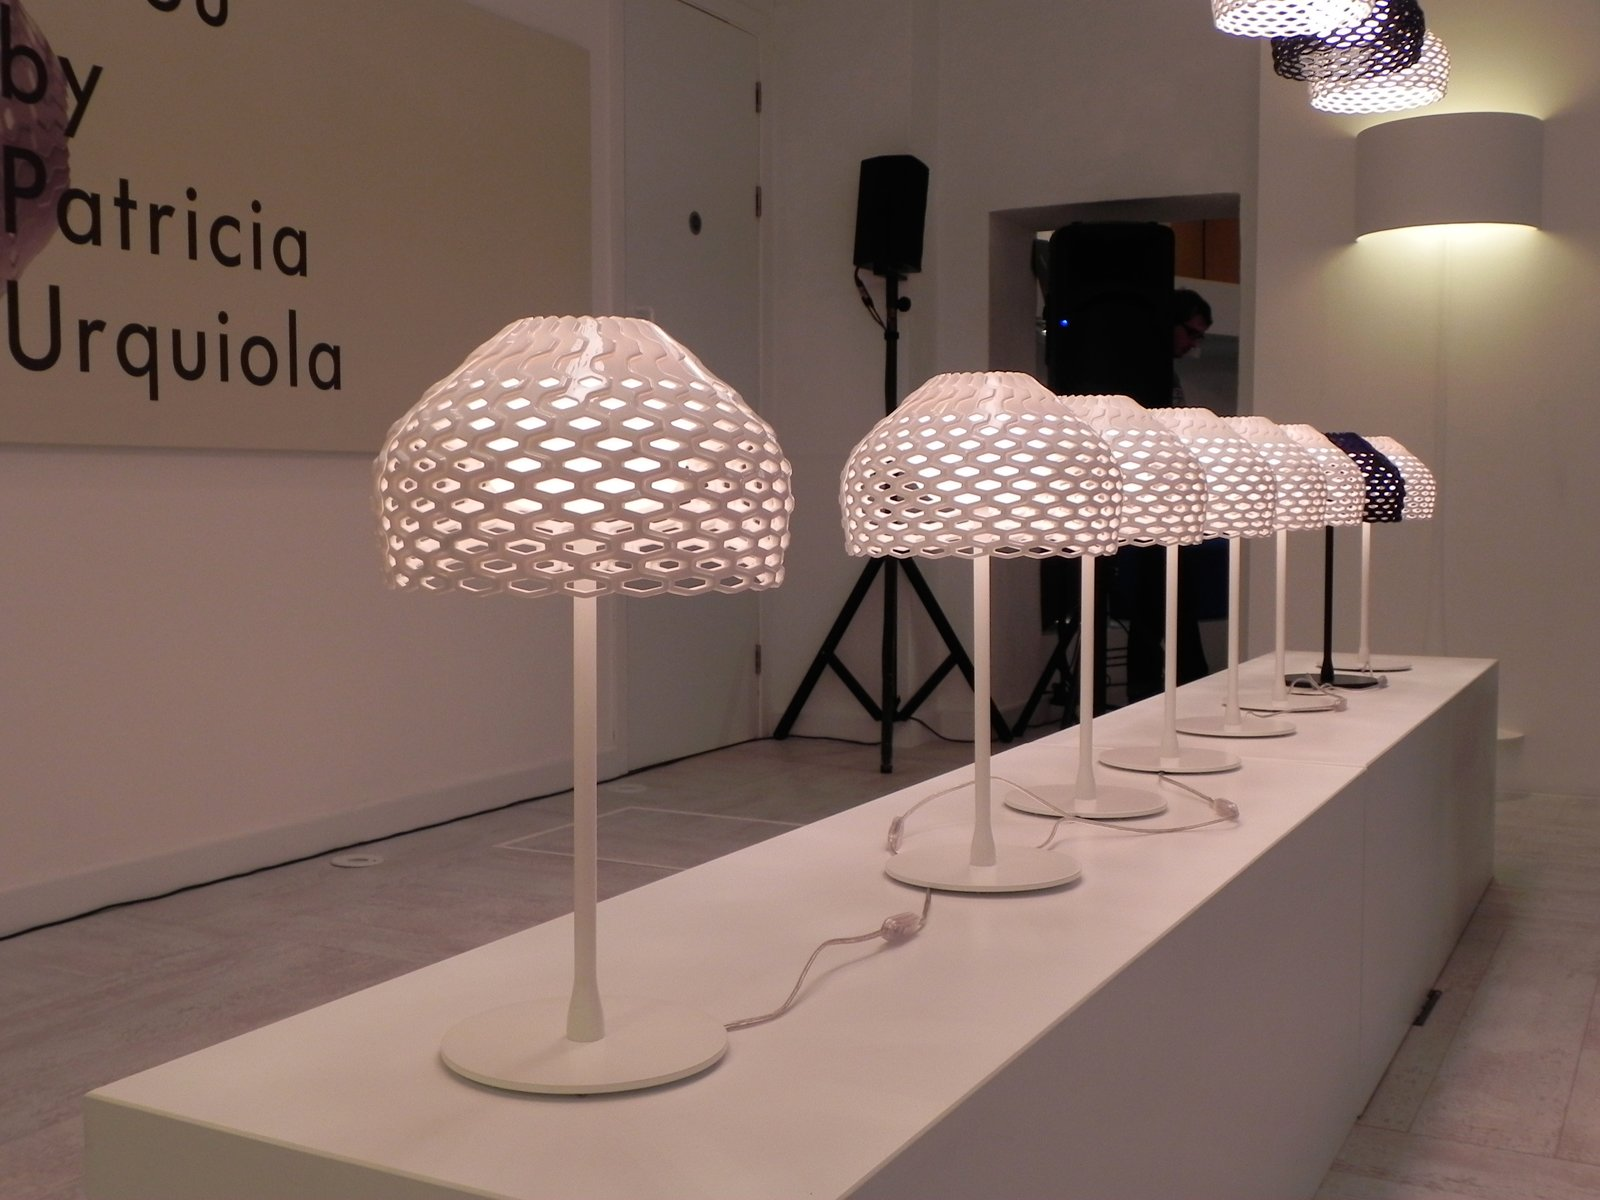 The Flos showroom in Clerkenwell launched Spanish designer Patricia Urquiola's Tatou lamp. Tatou, meaning Armadillo in French, is made from four methacrylate sheets that combine to make the perforated, dome-shaped shade.  London Design Festival 2012 by Ali Morris